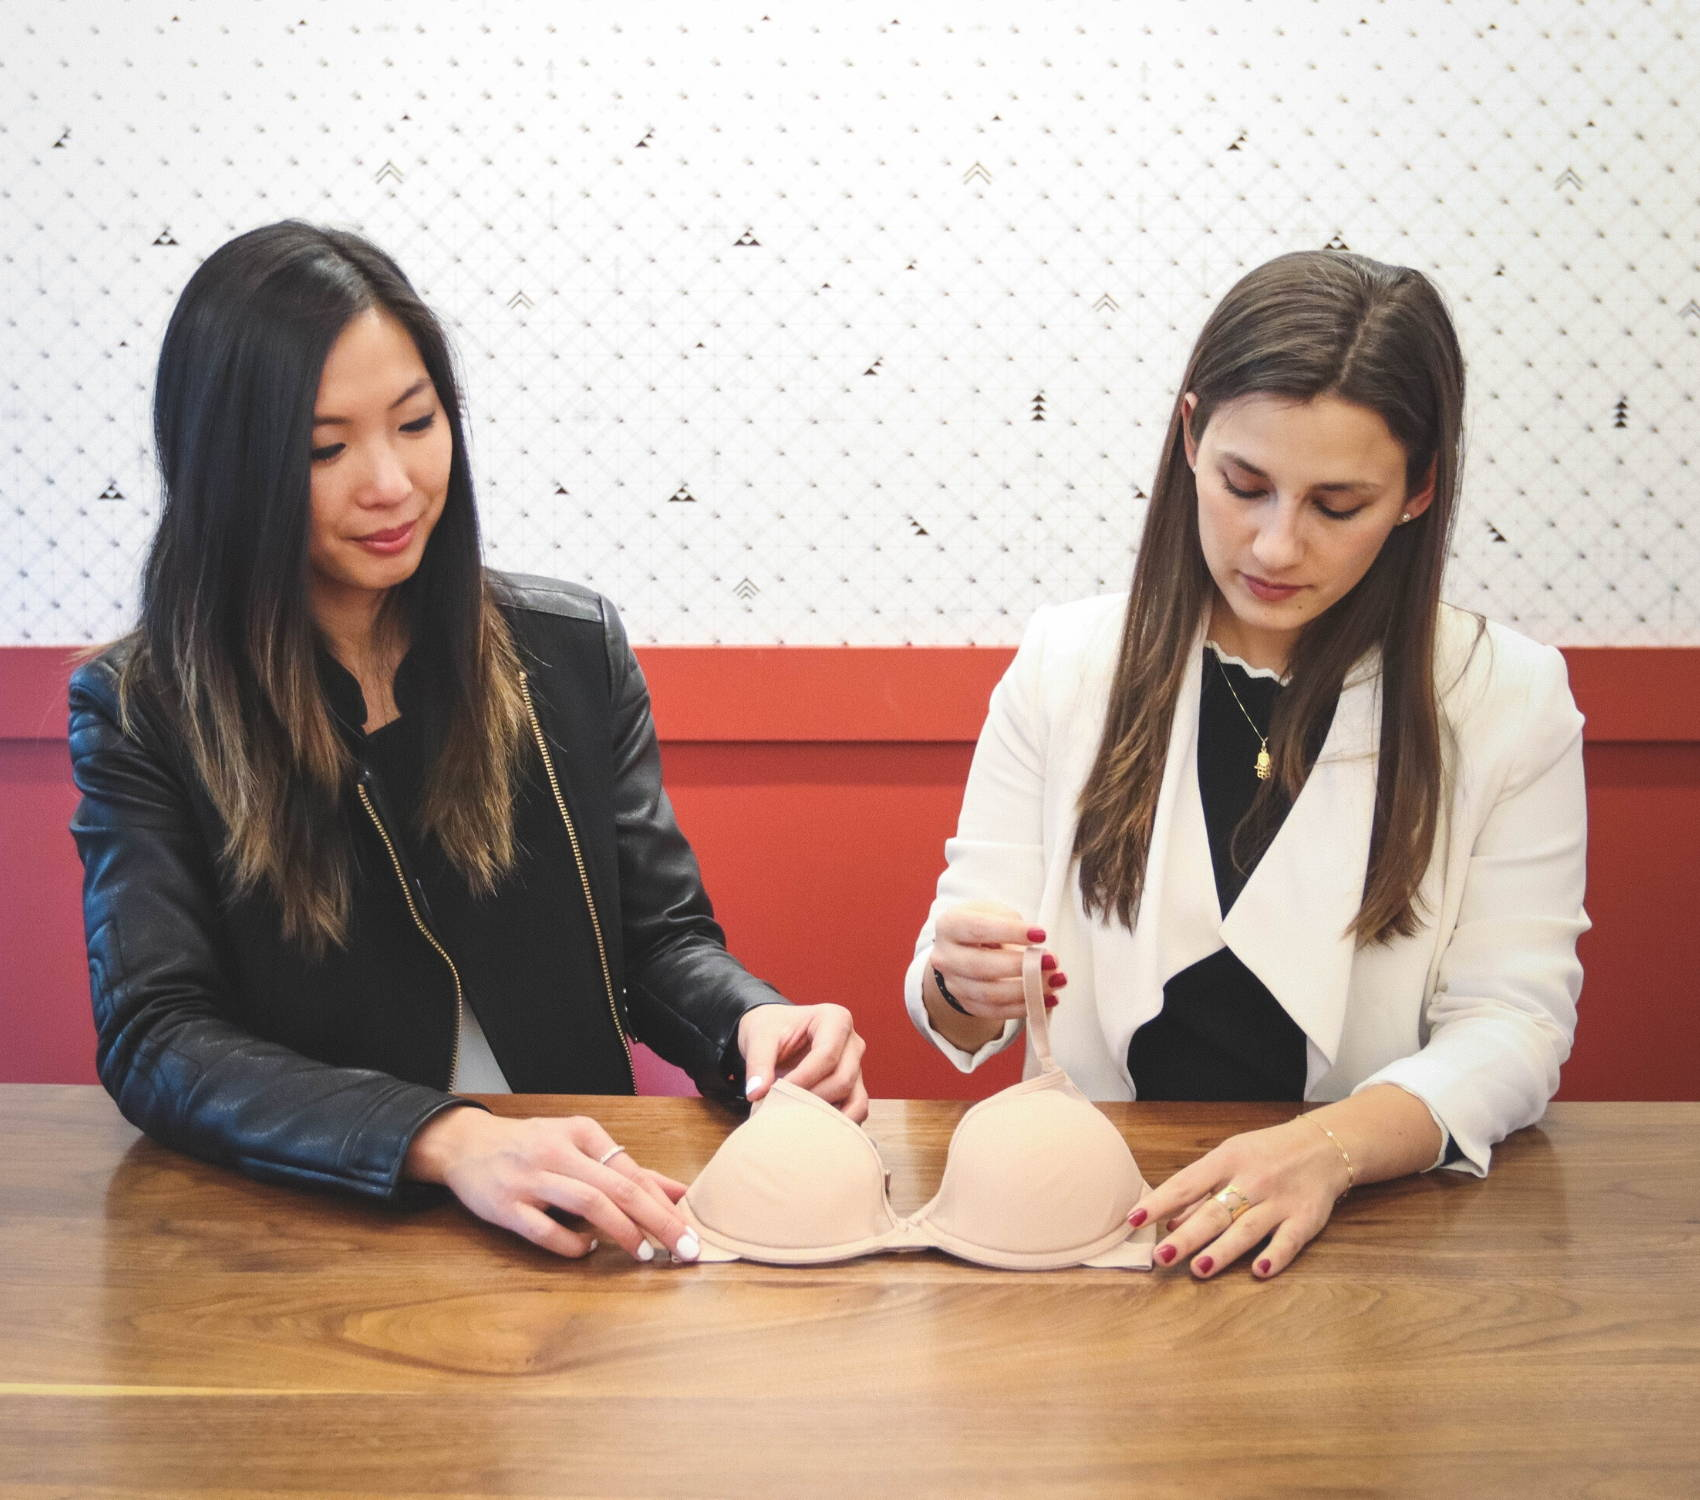 Pepper co-founders Jaclyn and Lia